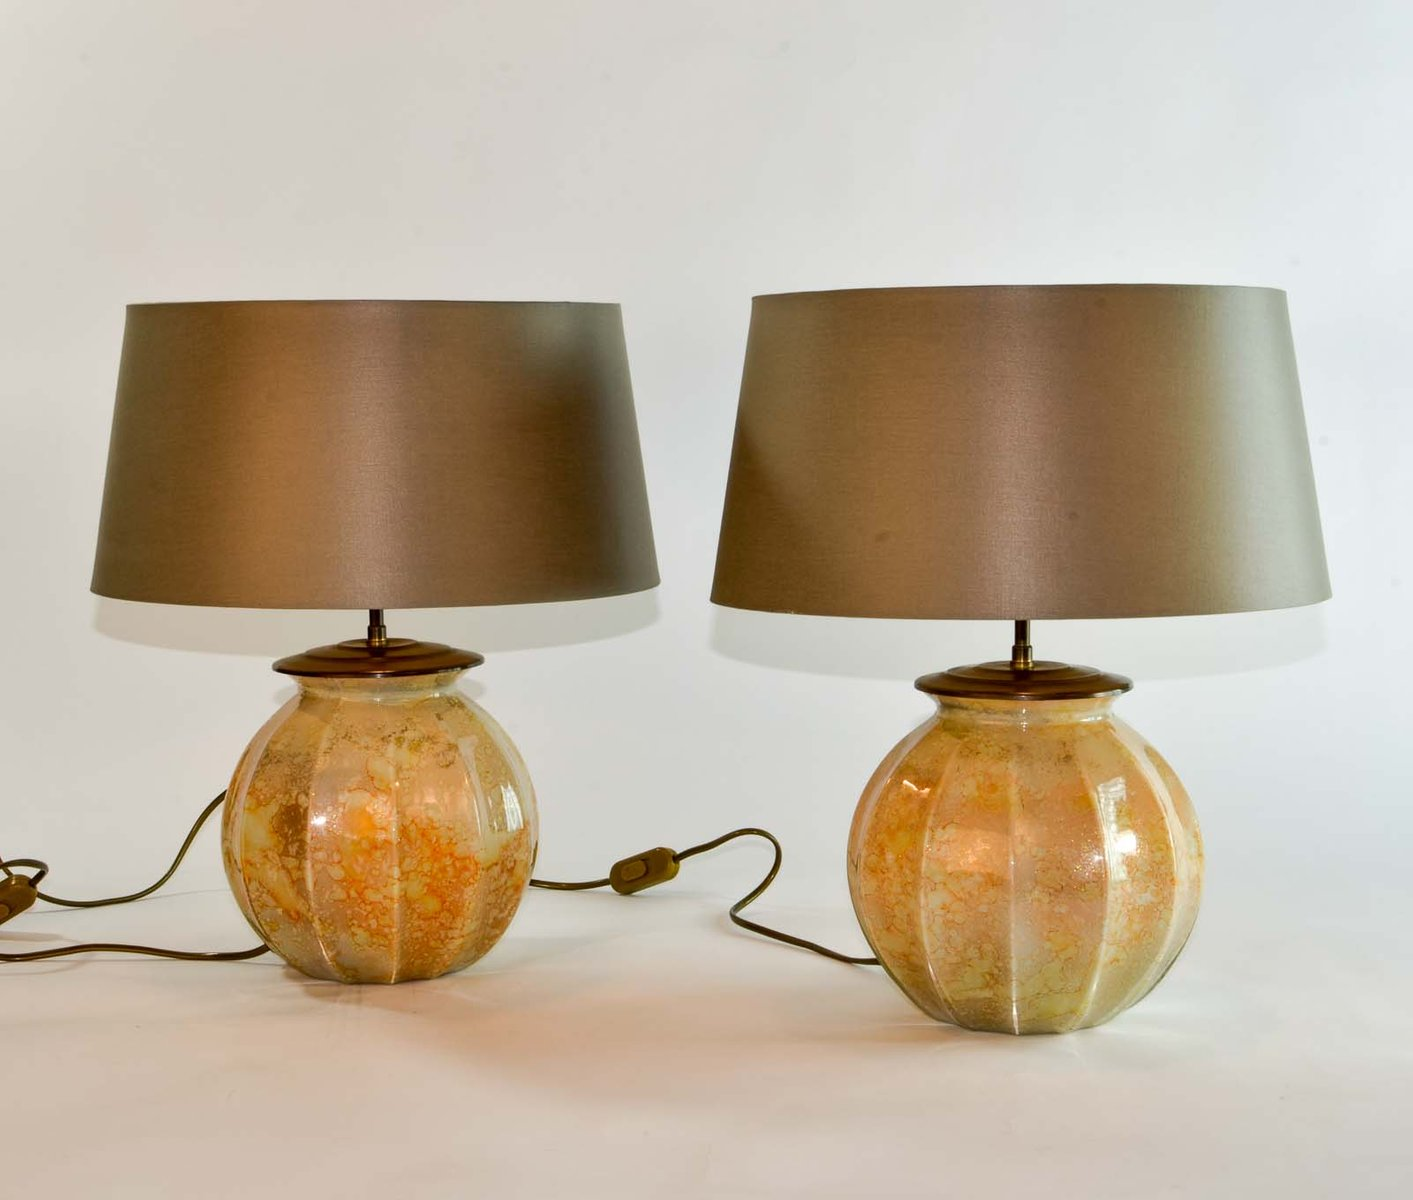 hand crafted table lamps from laque line 1970s set of 2. Black Bedroom Furniture Sets. Home Design Ideas